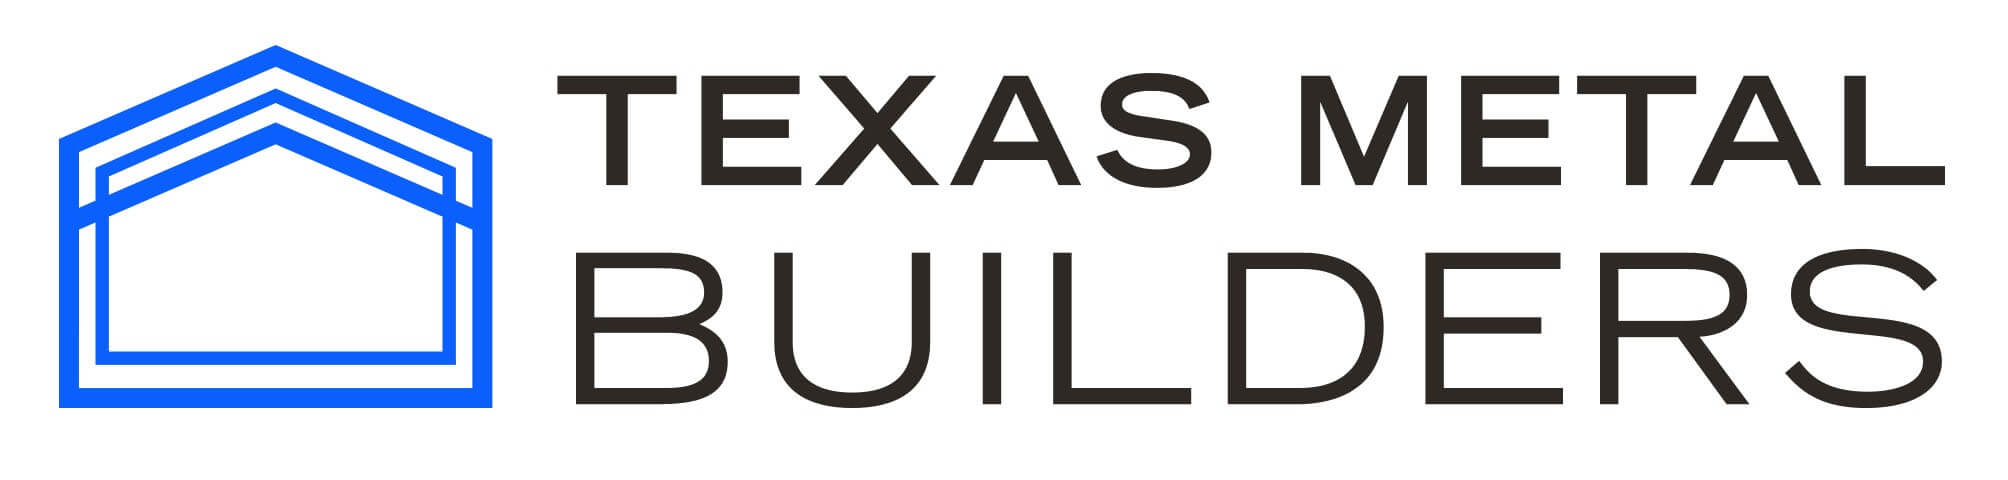 Texas Metal Builders